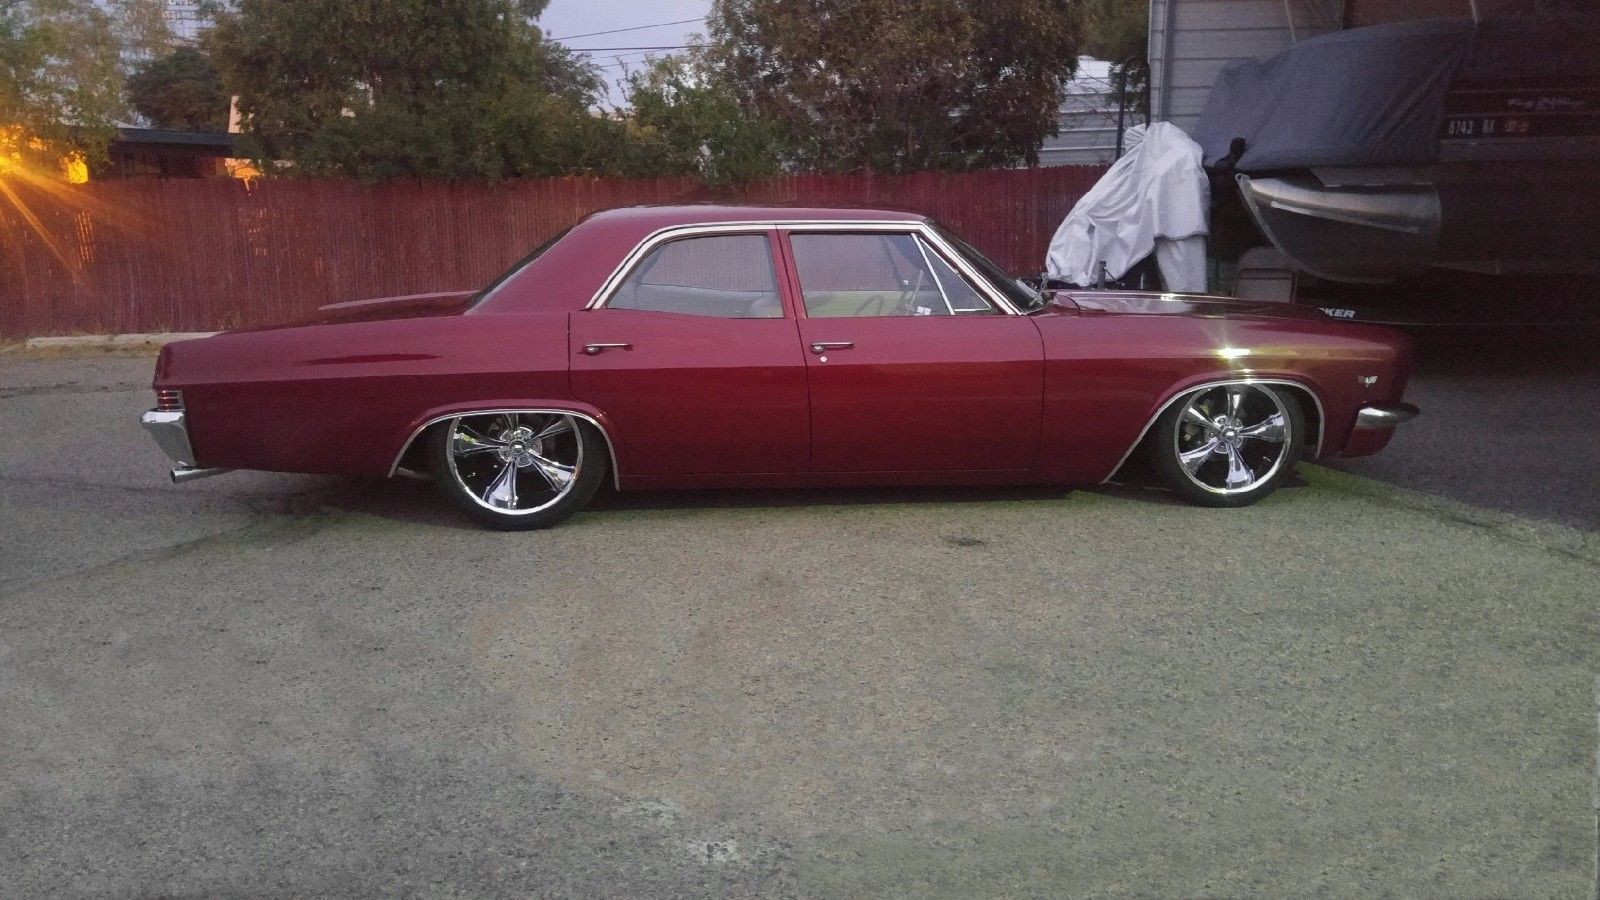 Pin By Classic Vintage Cars Pictures On Chevrolet Chevelle 1966 Chevy Impala Convertible Sedans Old